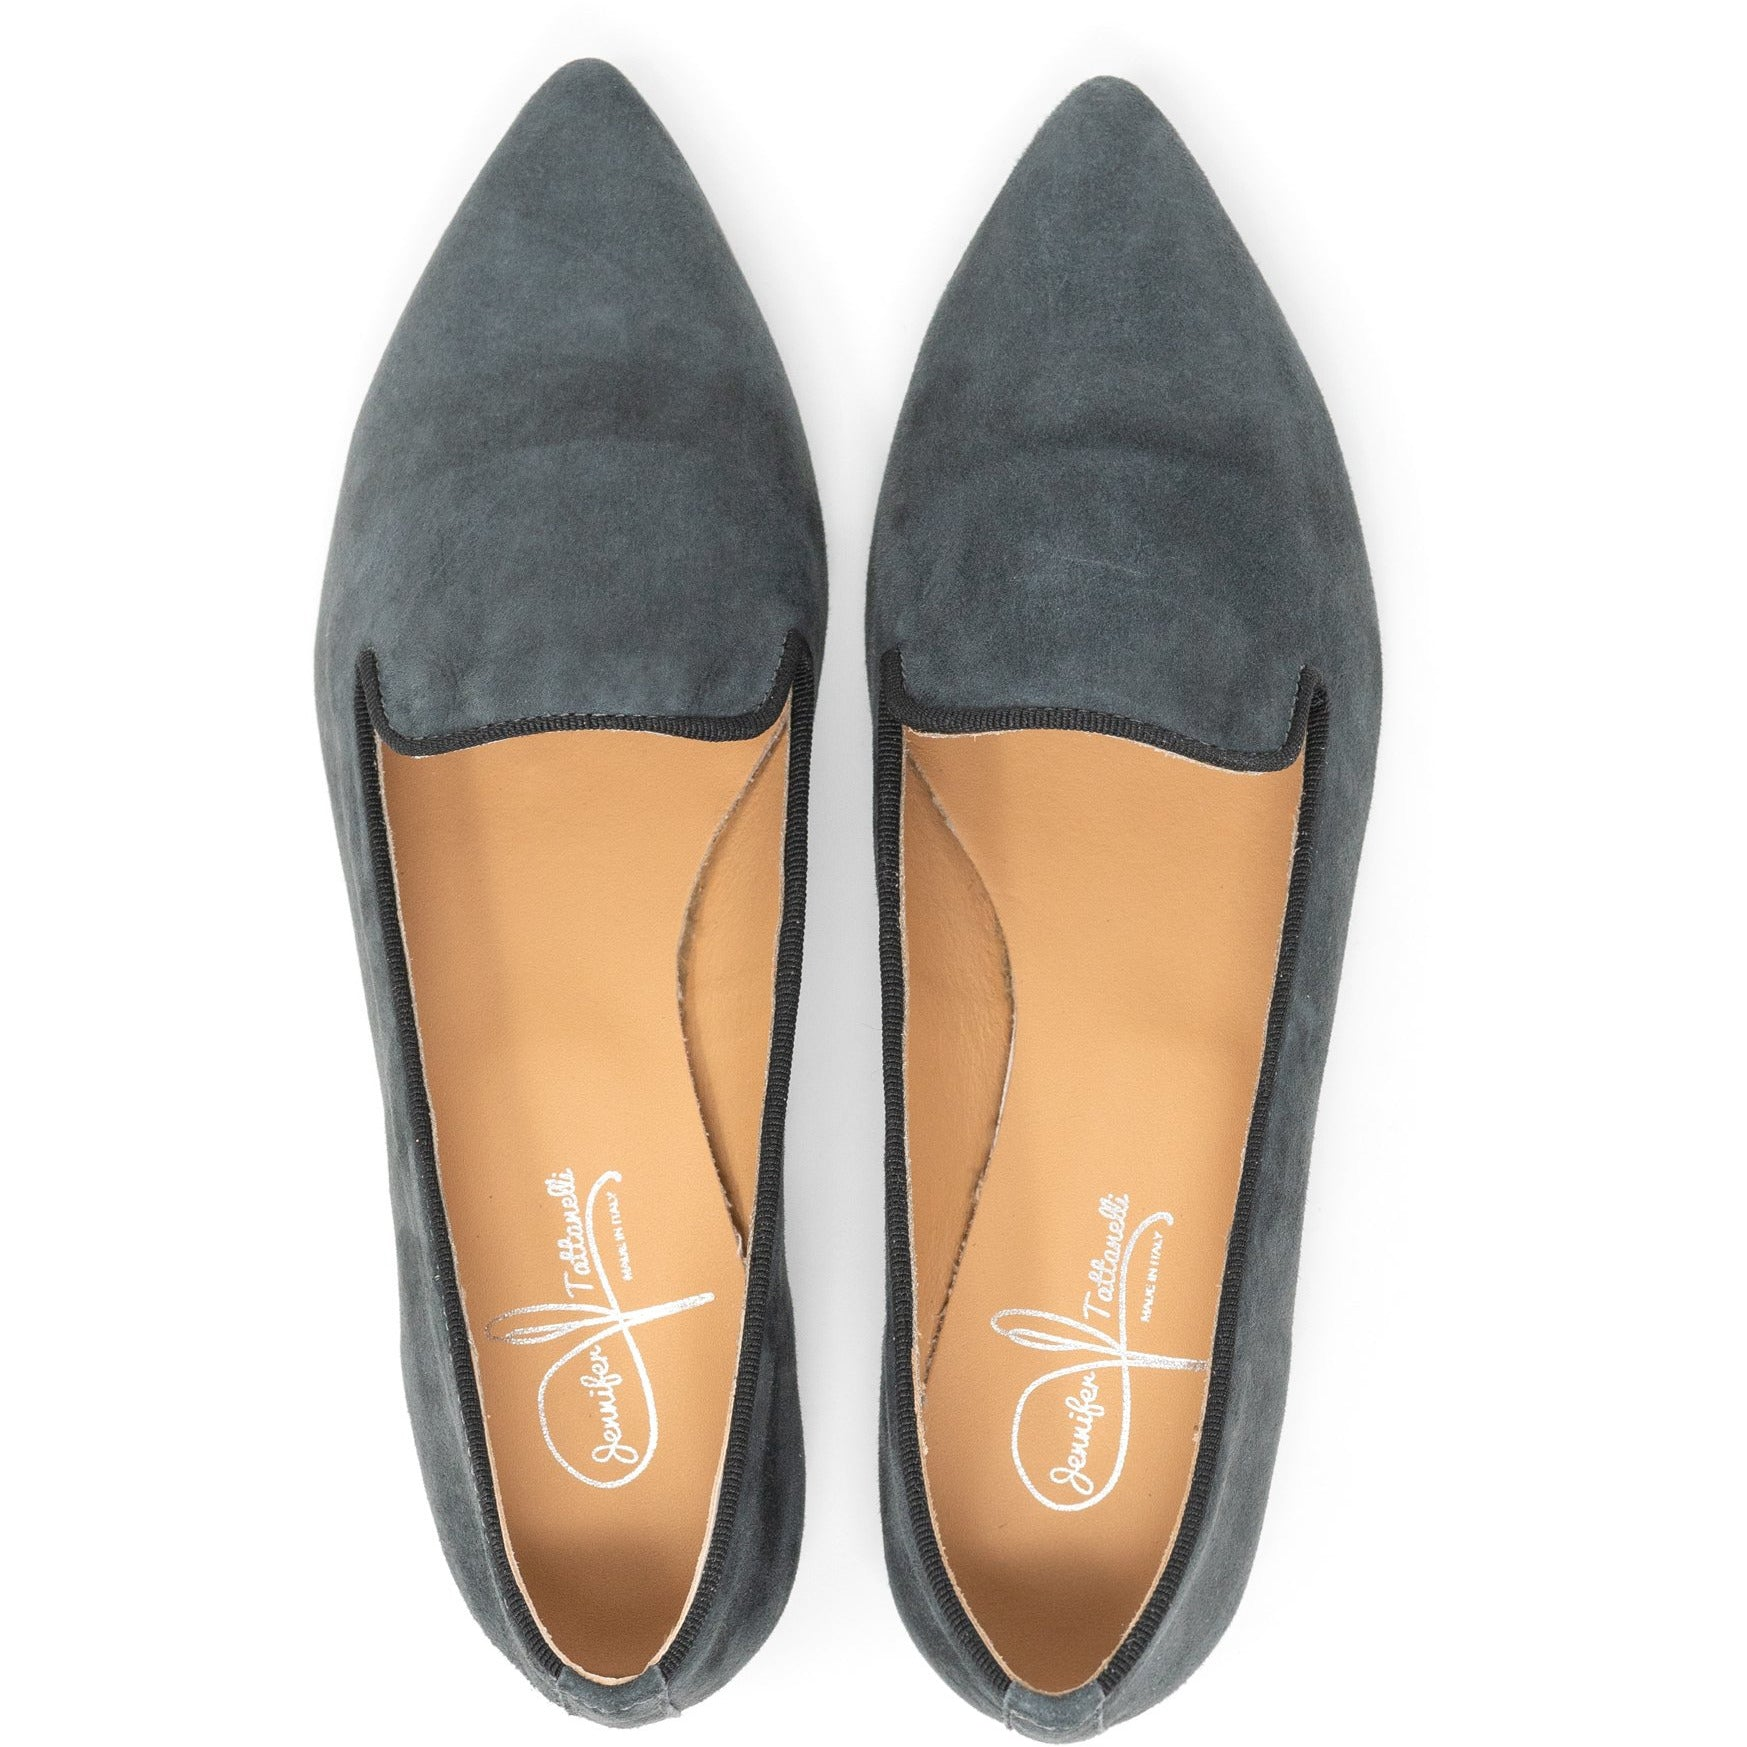 BAL9162 T10 Women Slip On - New Fall Winter 2019-2020 Collection